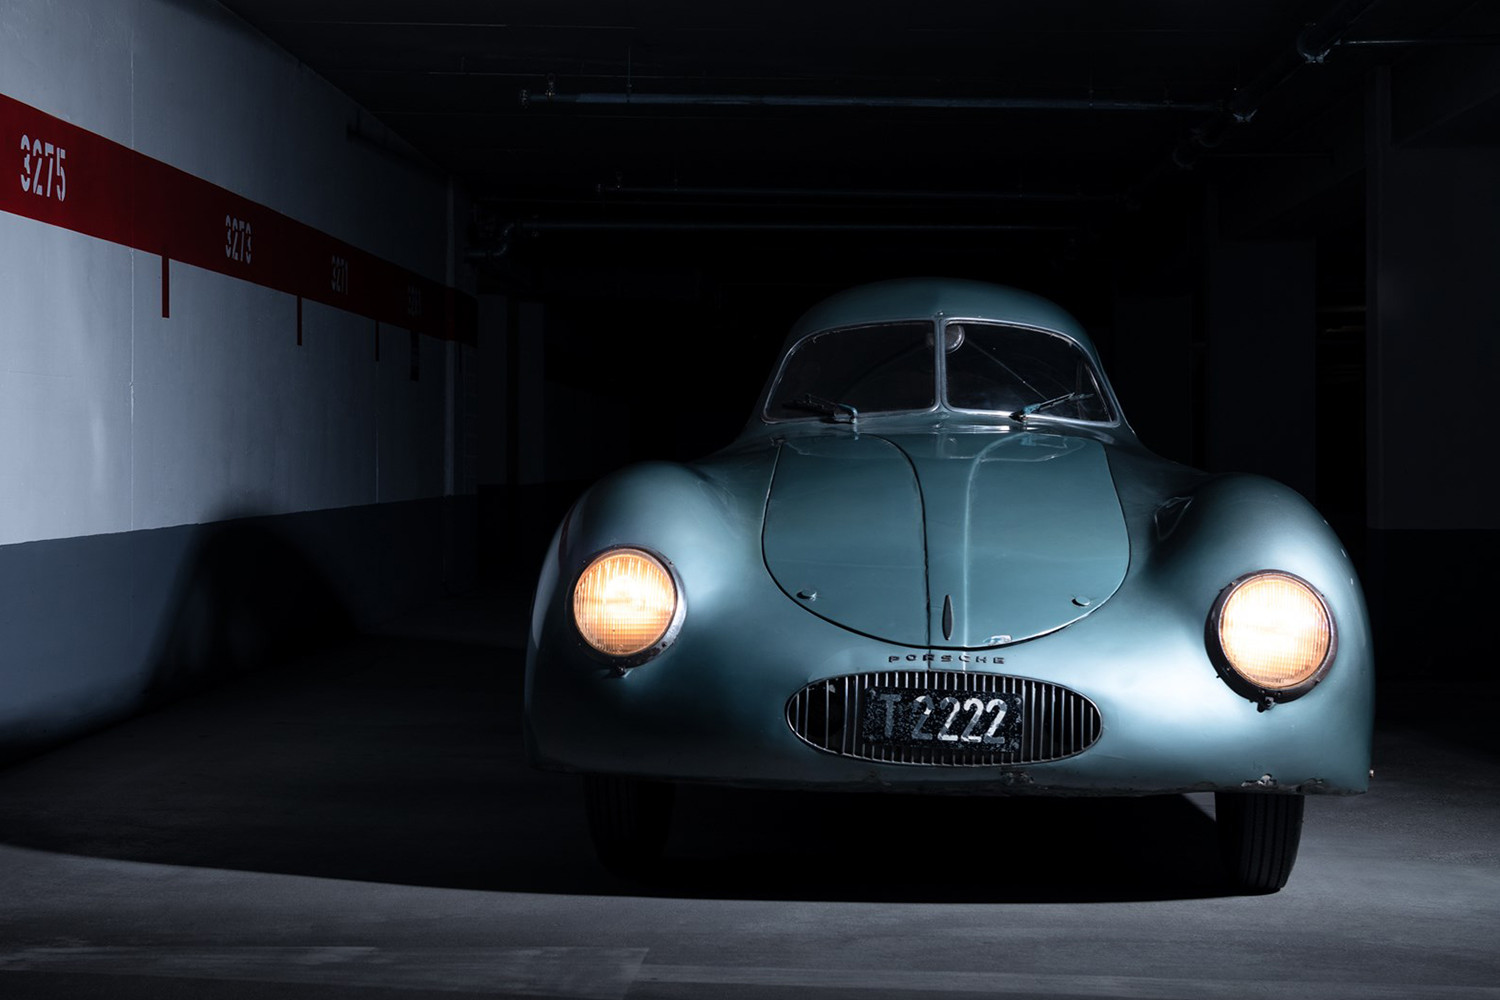 Just a few days ago, we told you about the Type 64, the first car with the last name 'Porsche' inscribed on it. The unique vehicle was slated to go under the hammer last weekend, but RM Sotheby's botched the auction when it misrepresented the bid amounts.